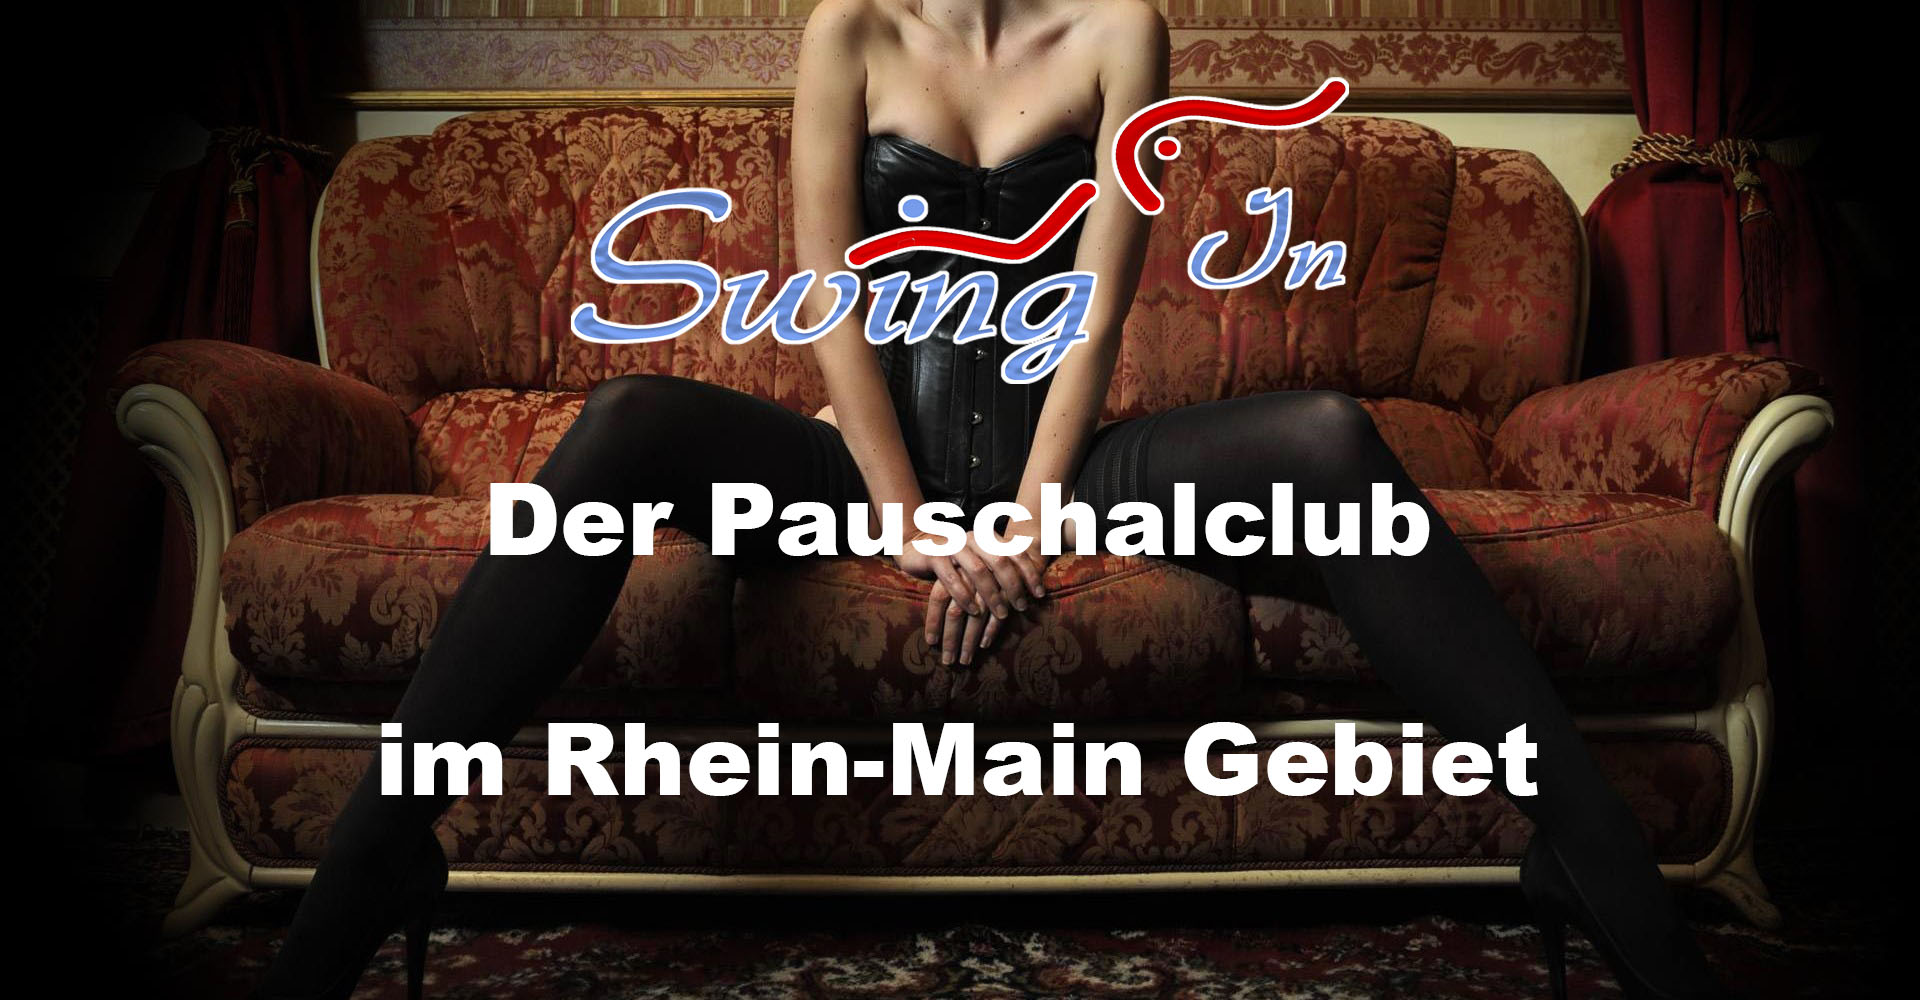 fkk sex swing in rodgau